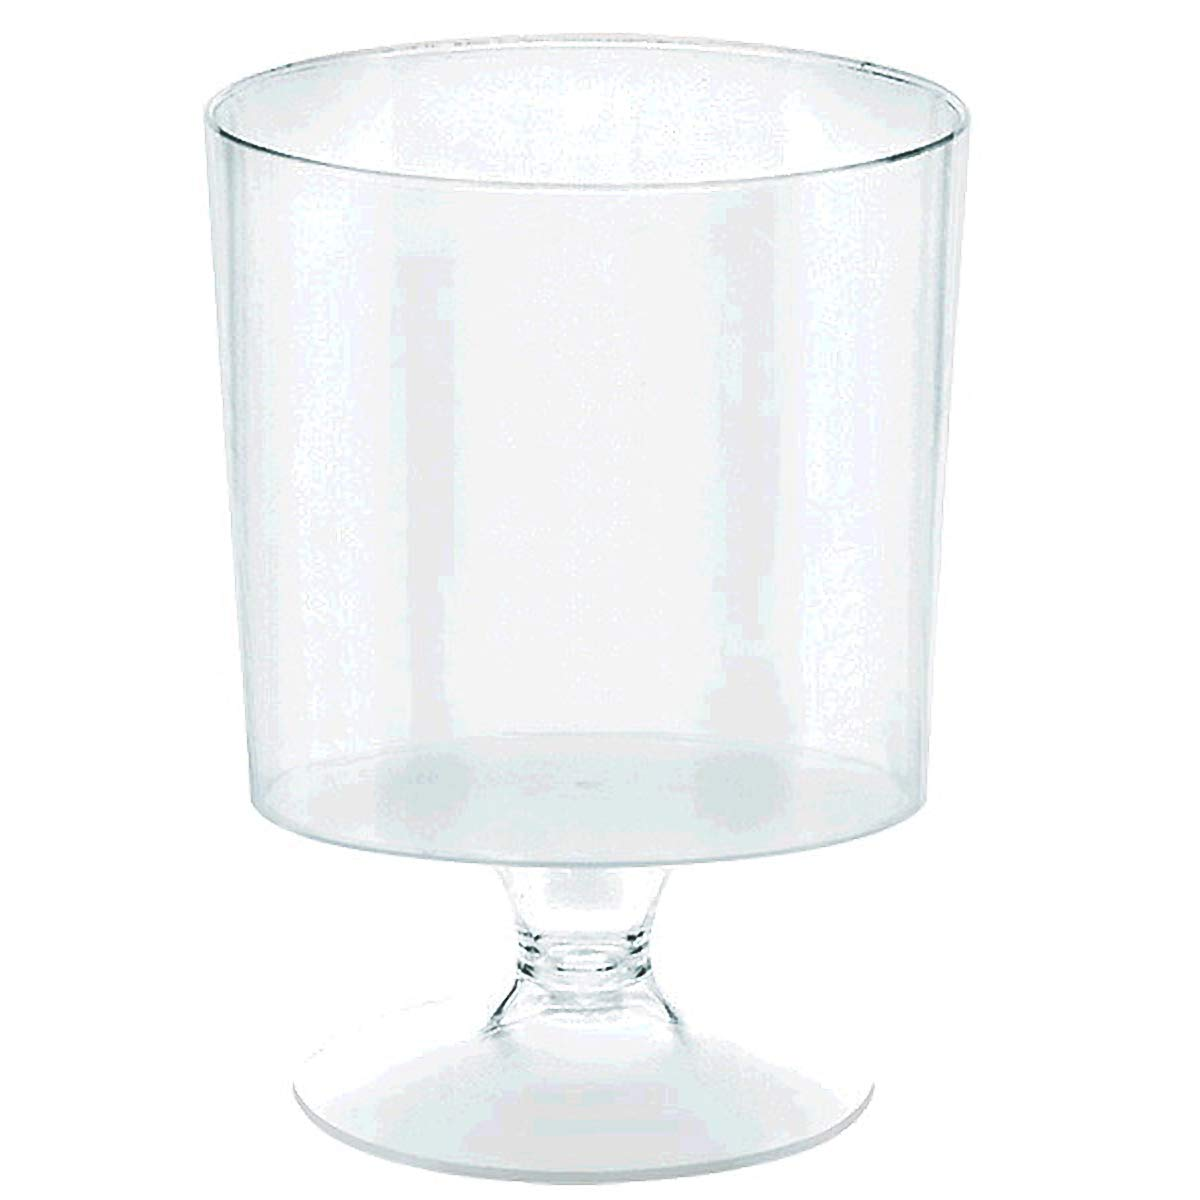 amscan Clear Tiny Pedestal Cup   2 oz.   240 Ct.